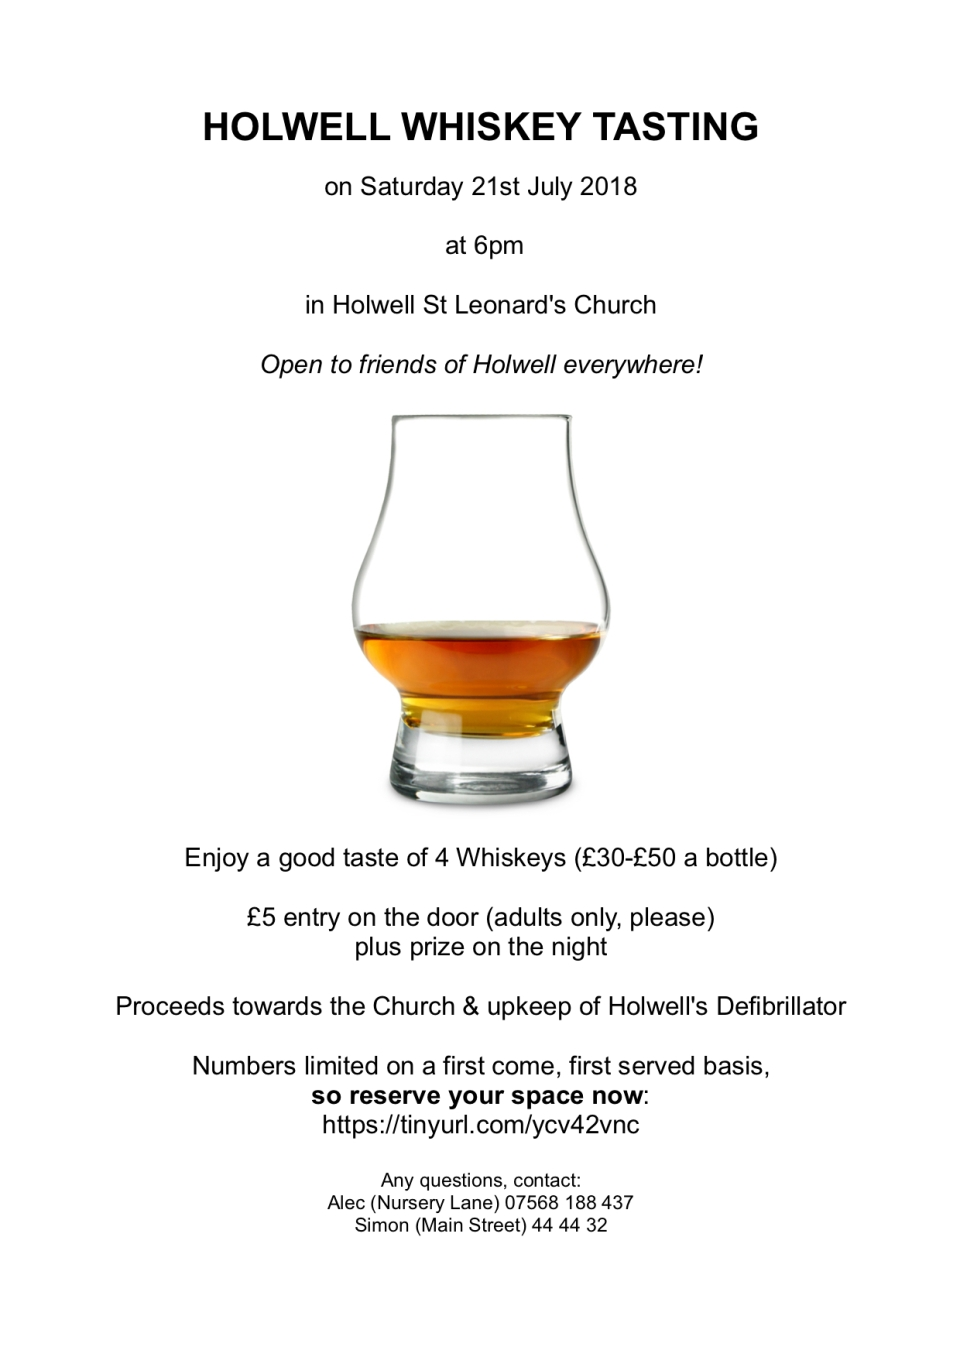 Holwell Whiskey Tasting 2018 flyer